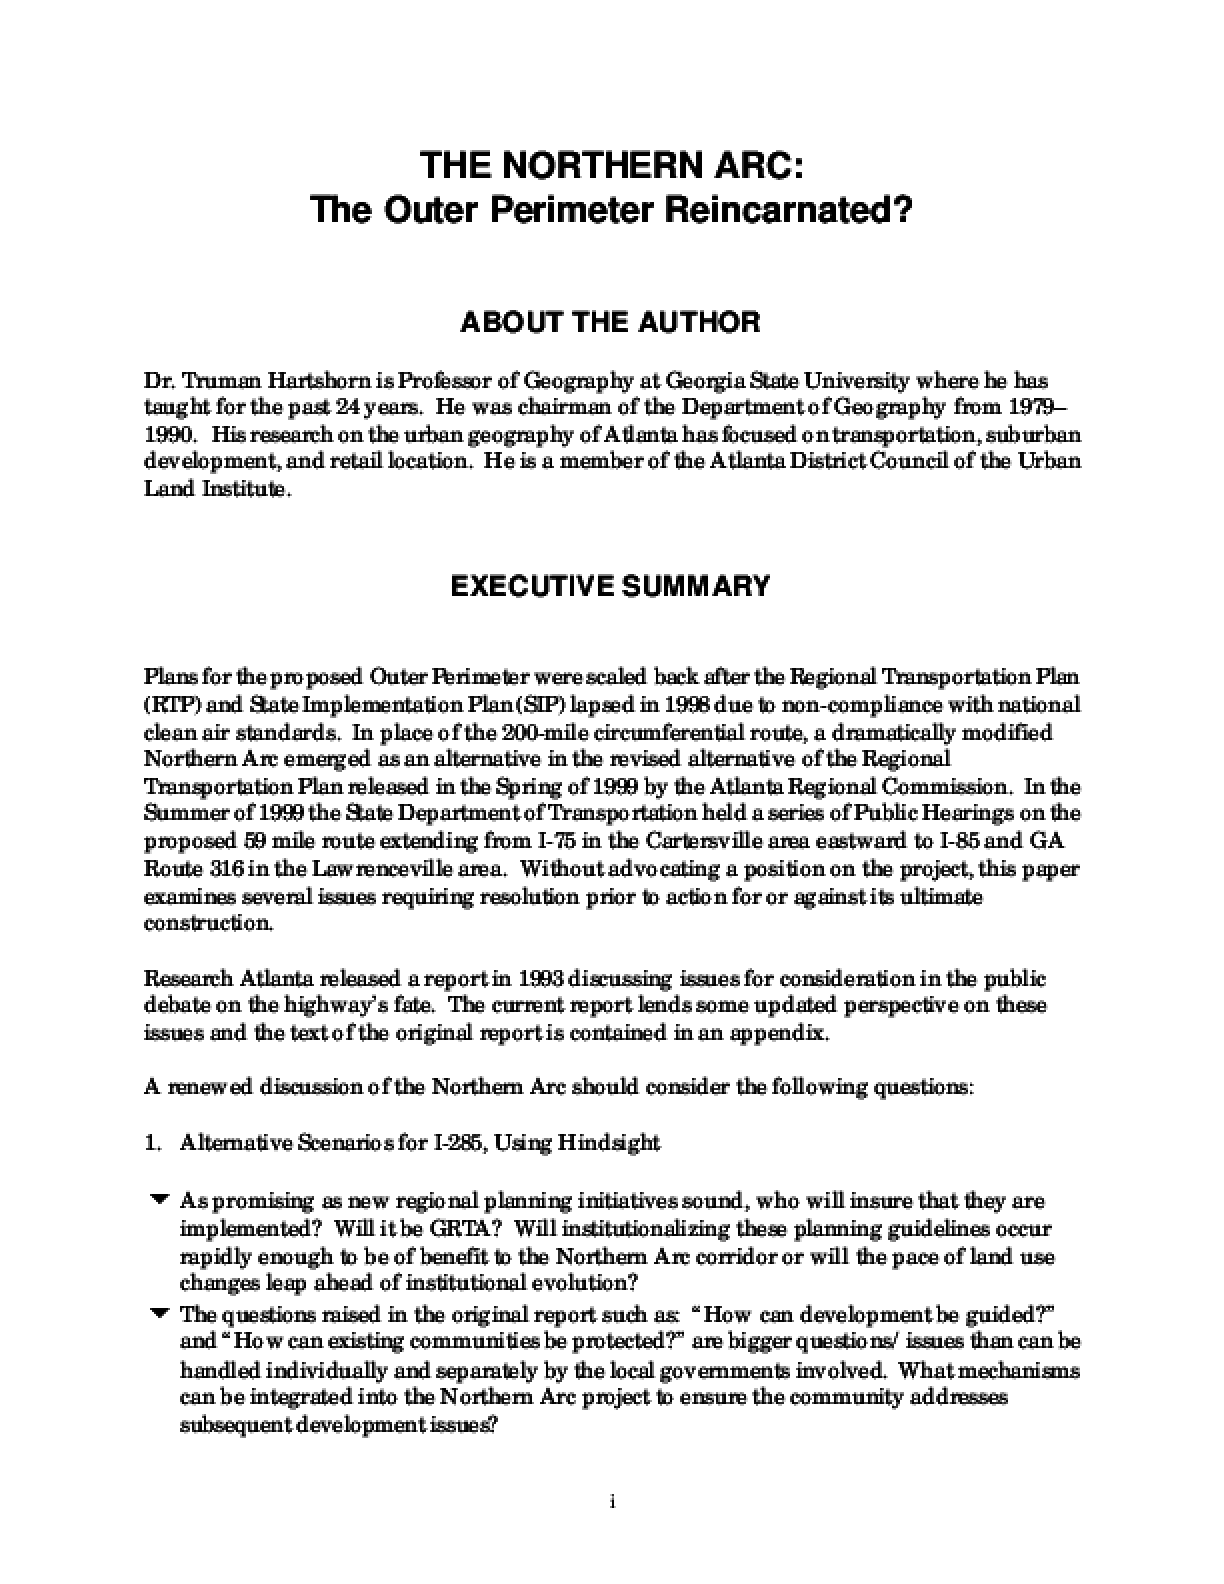 The Northern Arc: The Outer Perimeter Reincarnated?